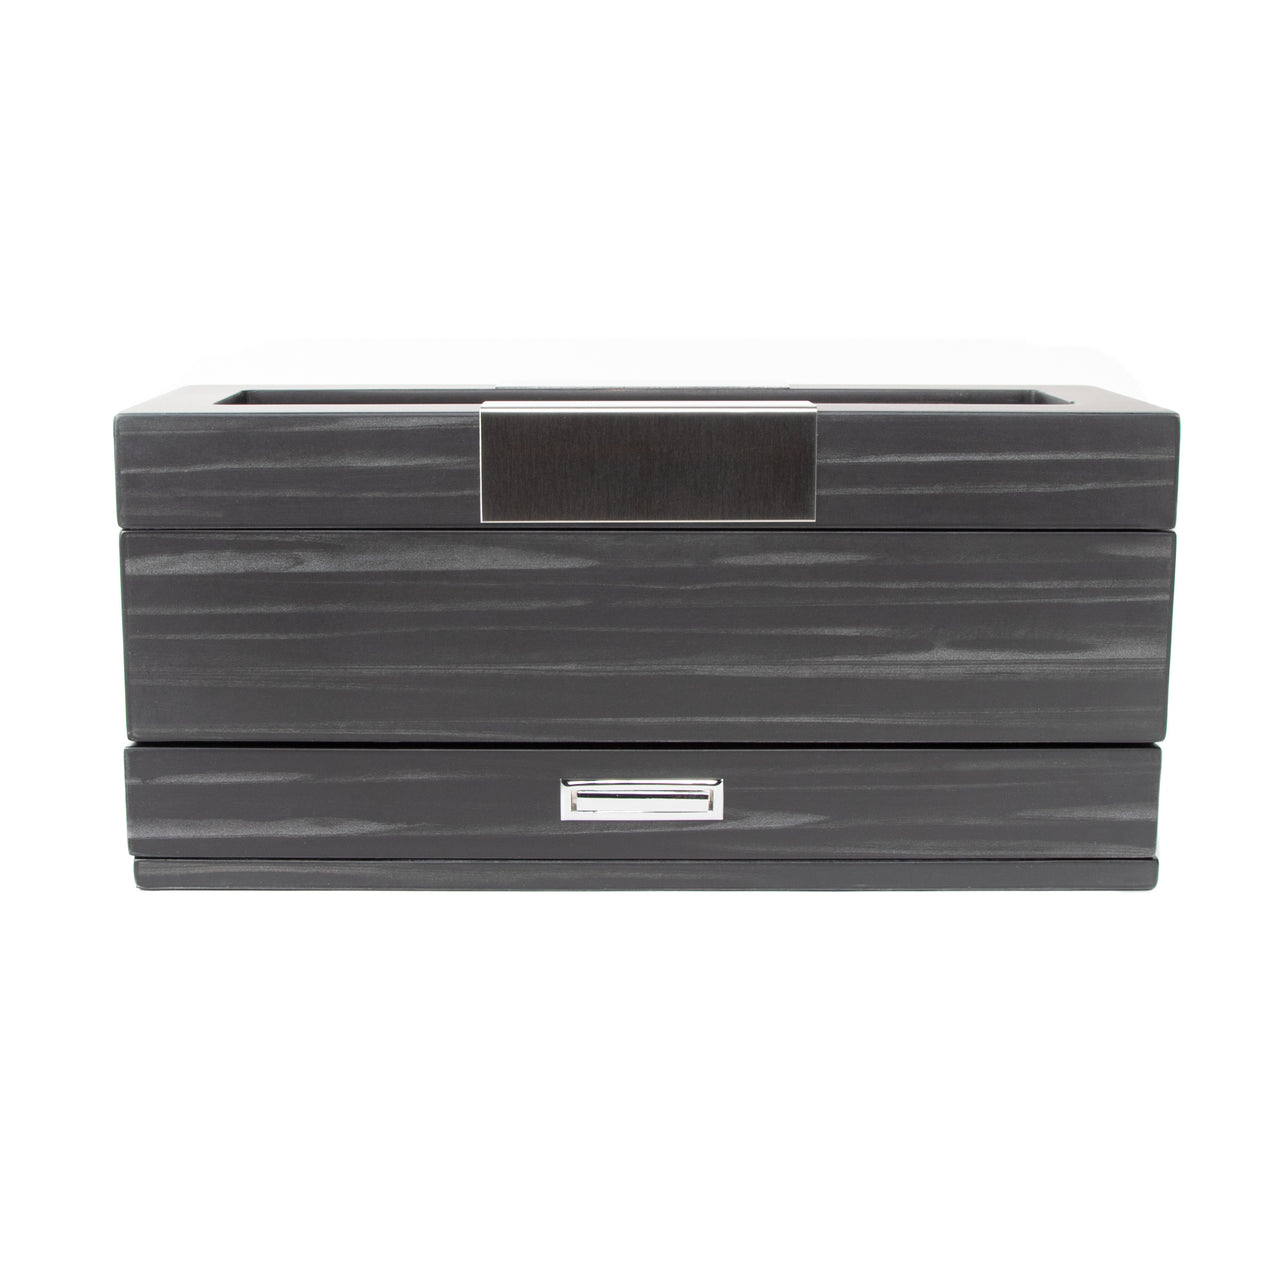 Matte Black 5-Slot Watch Box W/ Jewelry Tray